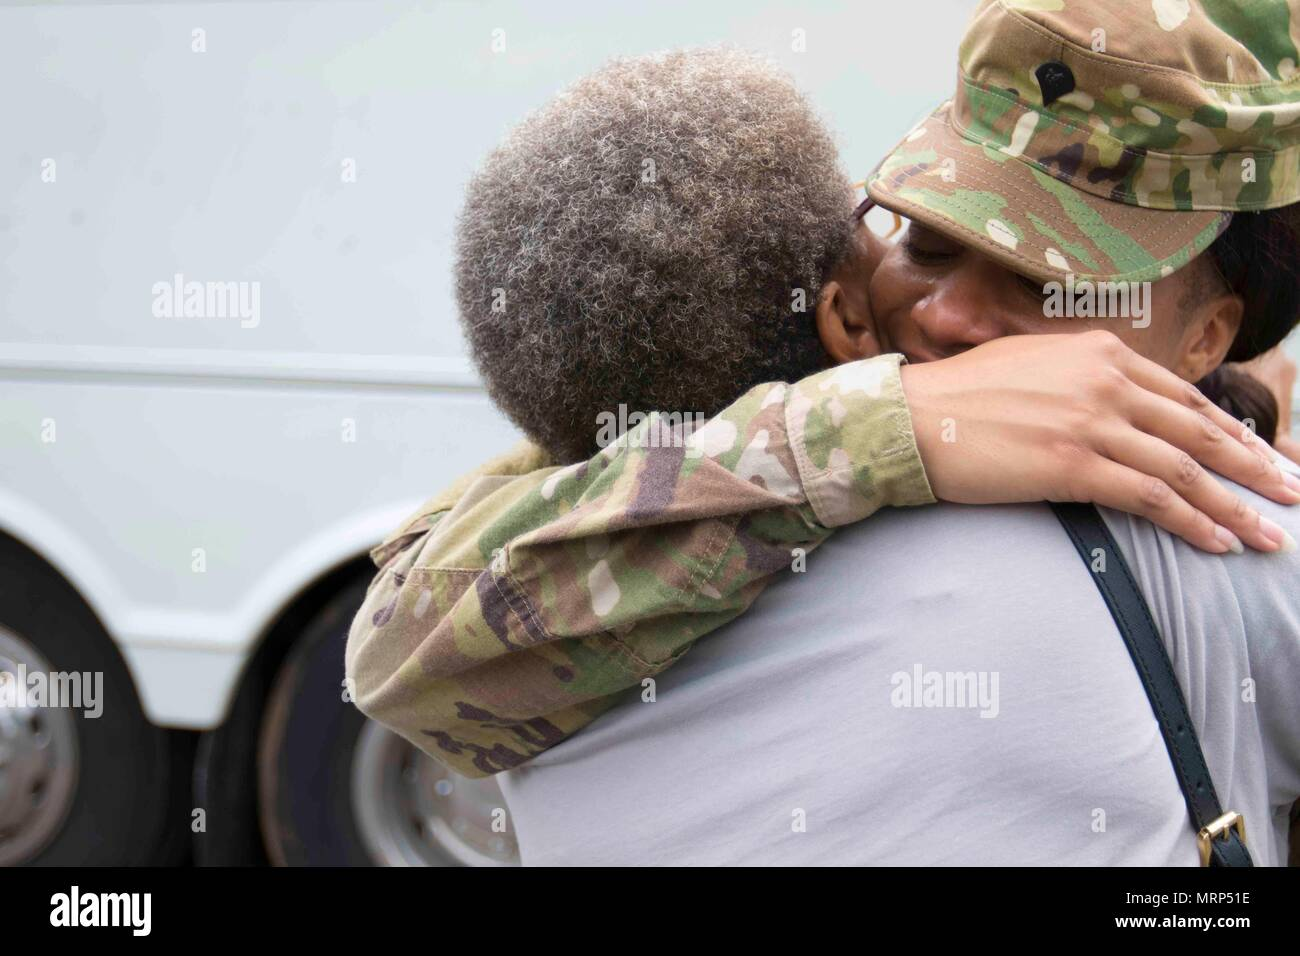 BIRMINGHAM, Al (June 24, 2017)— Spc. Amber Moore, power-generator equipment repairer with the 135th ESC, in a tearful embrace with her mother, Lisa Moore, before departing for Fort Hood, TX. For many of these Soldiers and their families it will be their first time going through a deployment. (U.S. Army photo by Cpl. Jaccob Hearn) - Stock Image